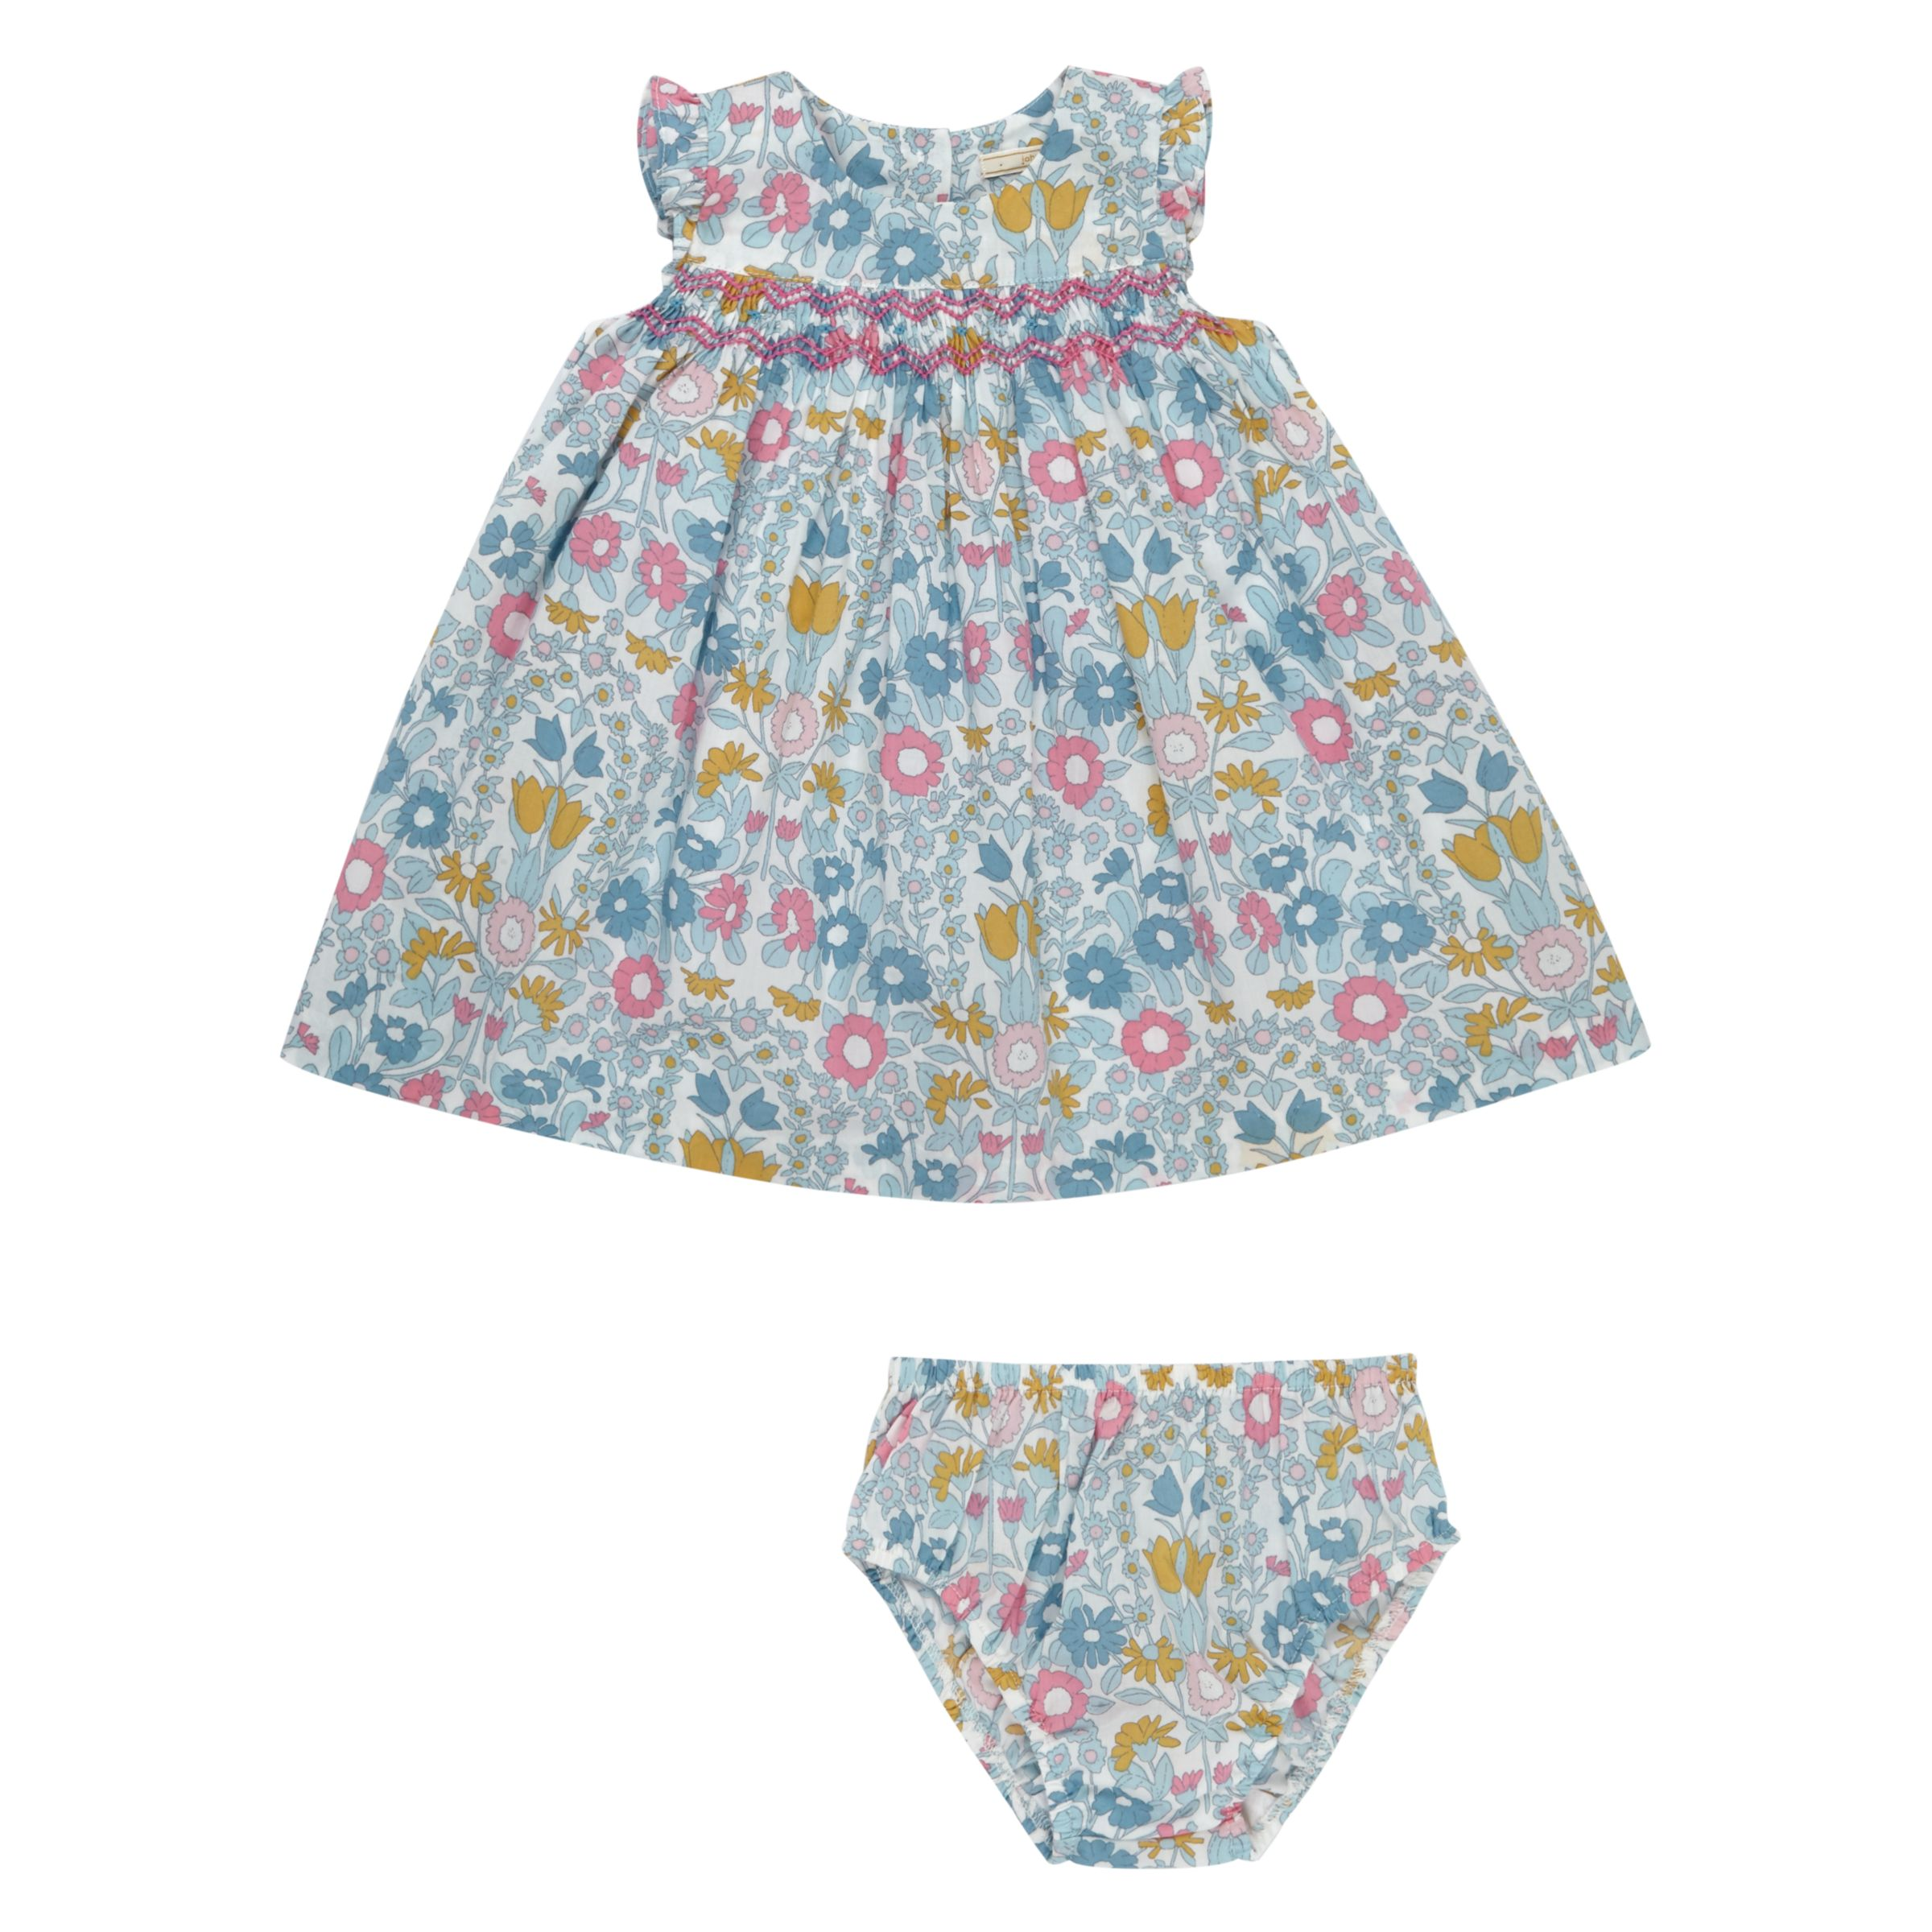 John Lewis Heirloom Collection John Lewis Heirloom Collection Baby Smock Cotton Dress and Knickers Set, Green/Multi